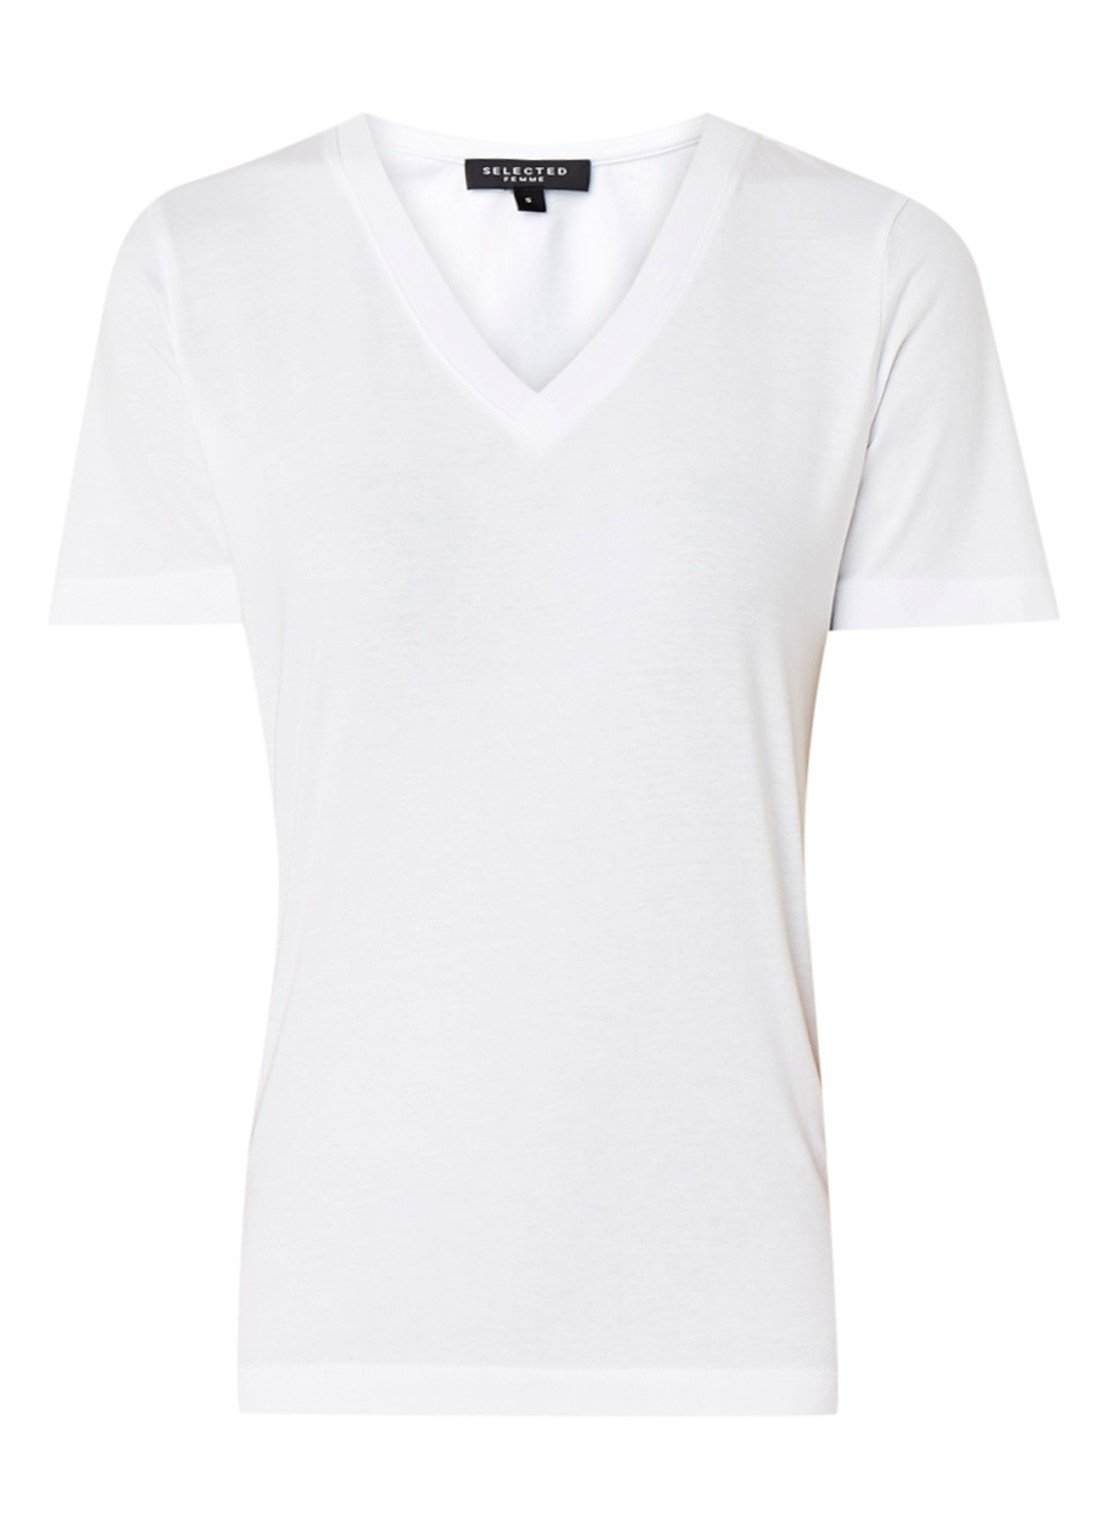 Selected Femme Standard cotton T-shirt with V-neck